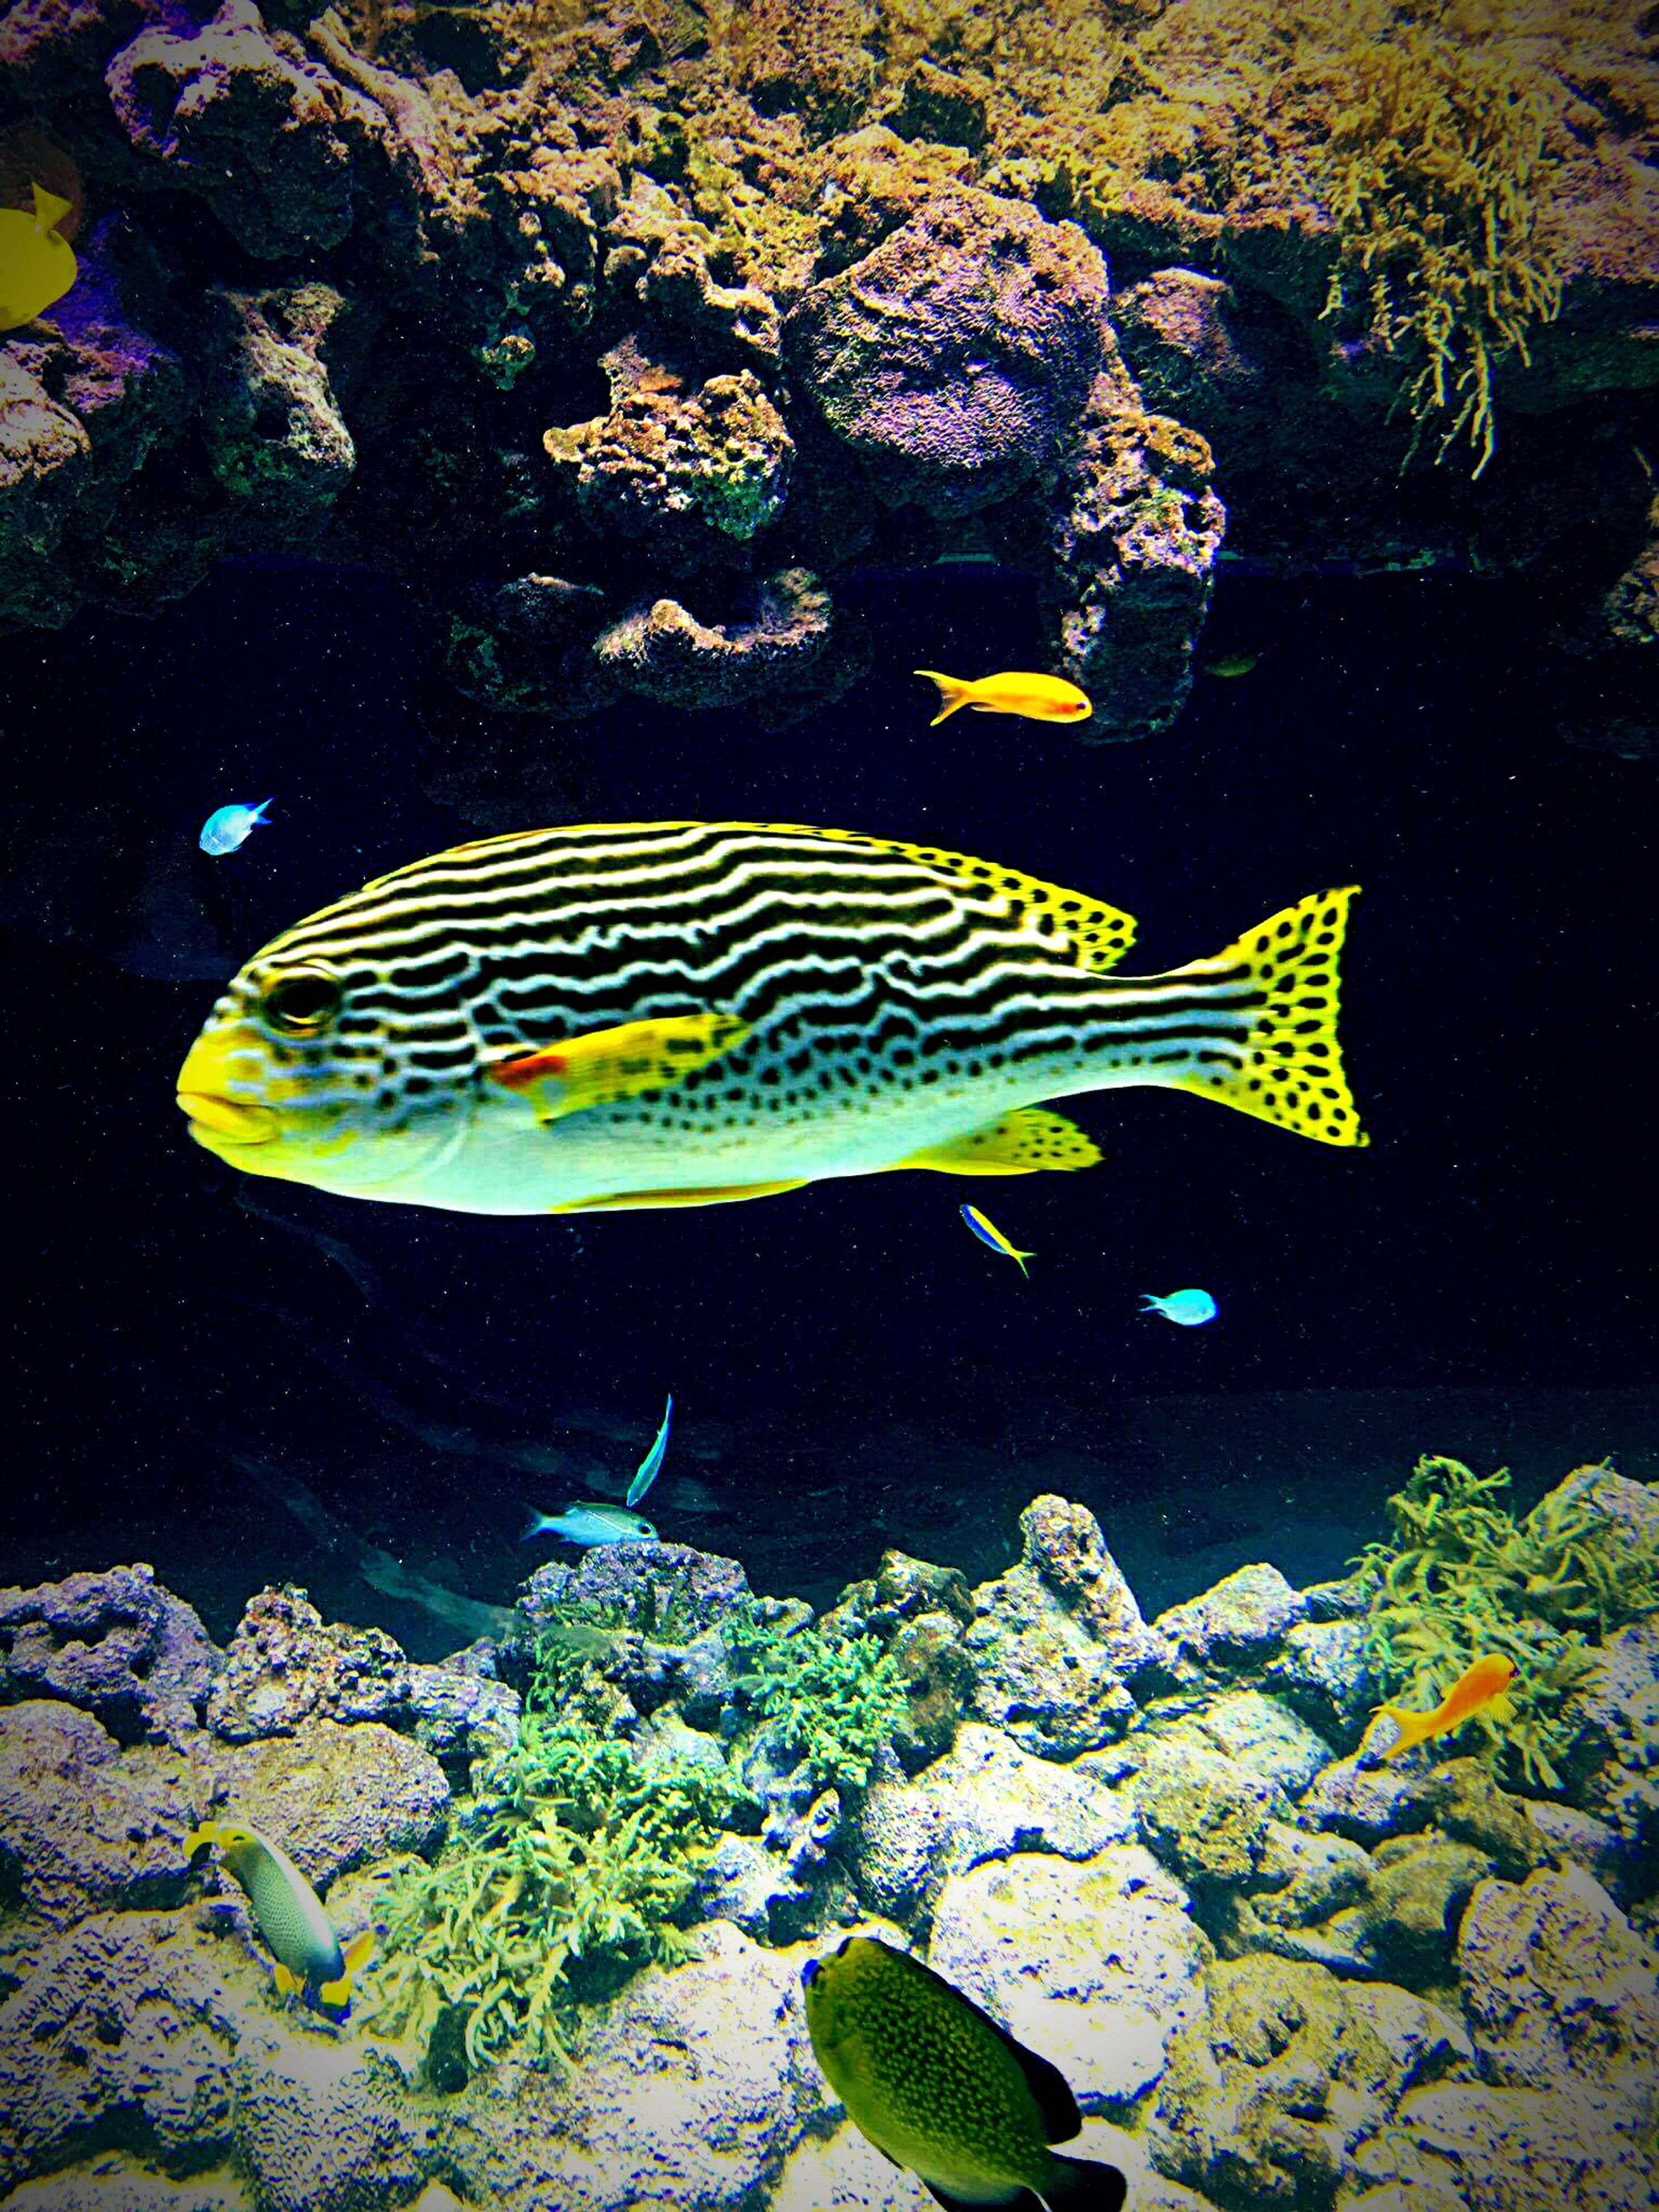 underwater, sea, water, fish, undersea, sea life, swimming, no people, beauty in nature, scenics, animals in the wild, living organism, nature, animal themes